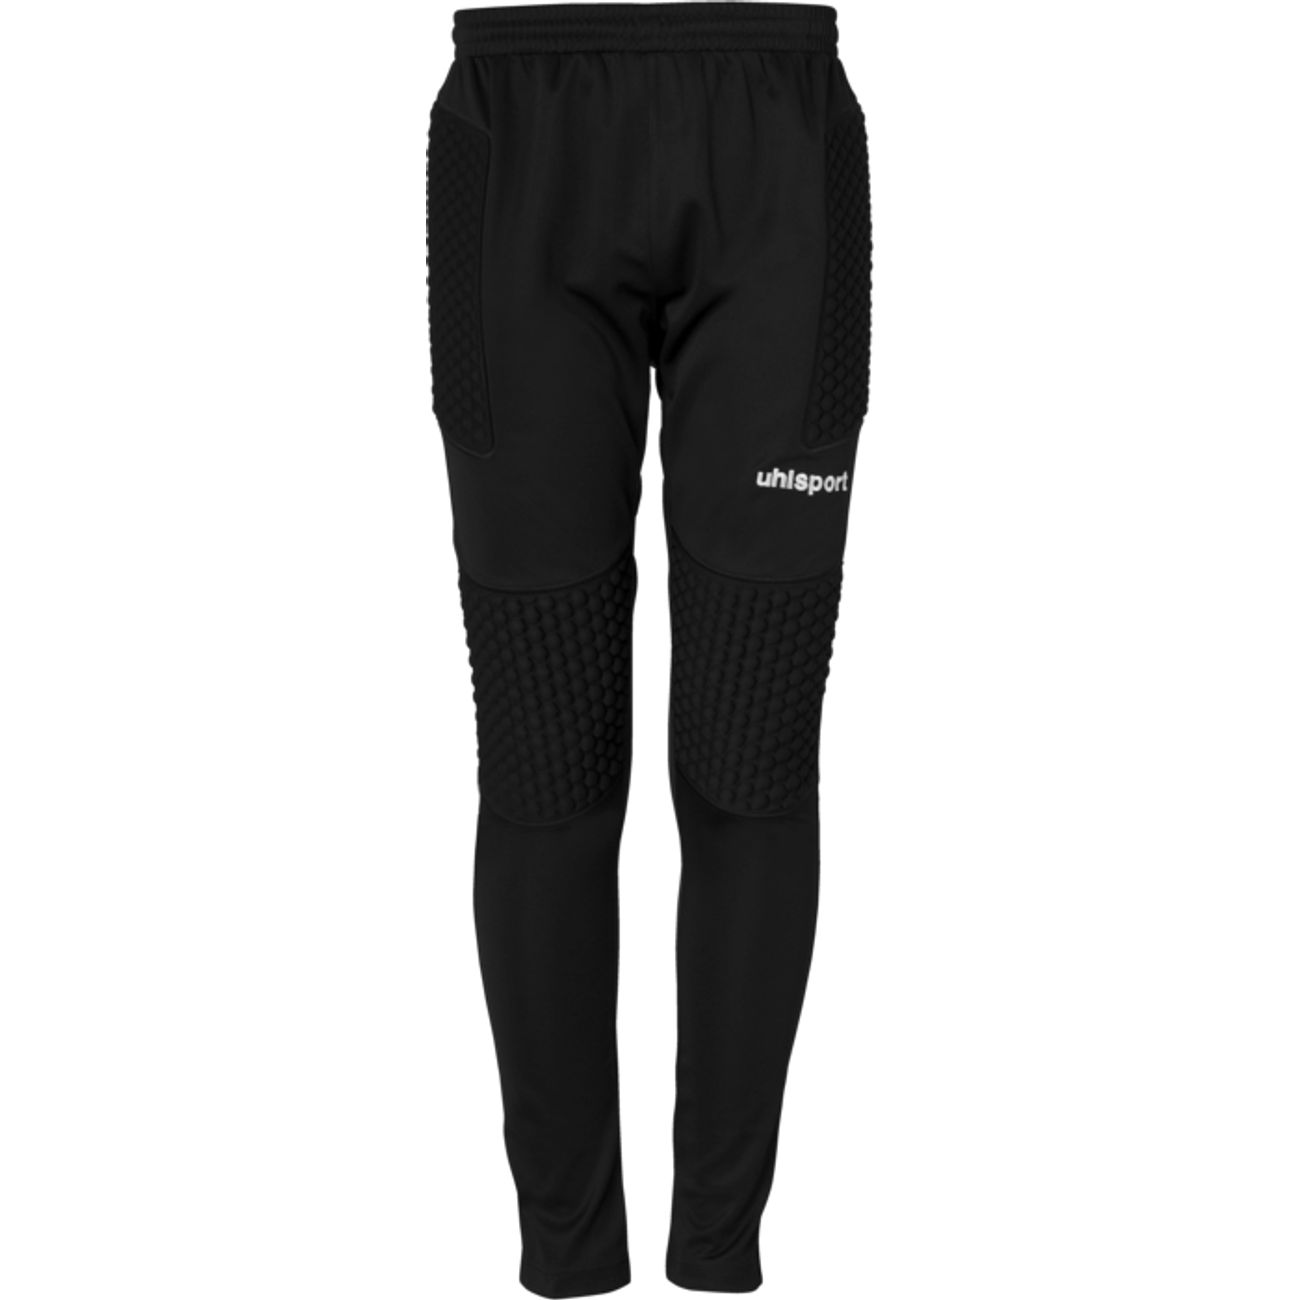 PANTALON Football junior UHLSPORT STANDARD GK PANT JR